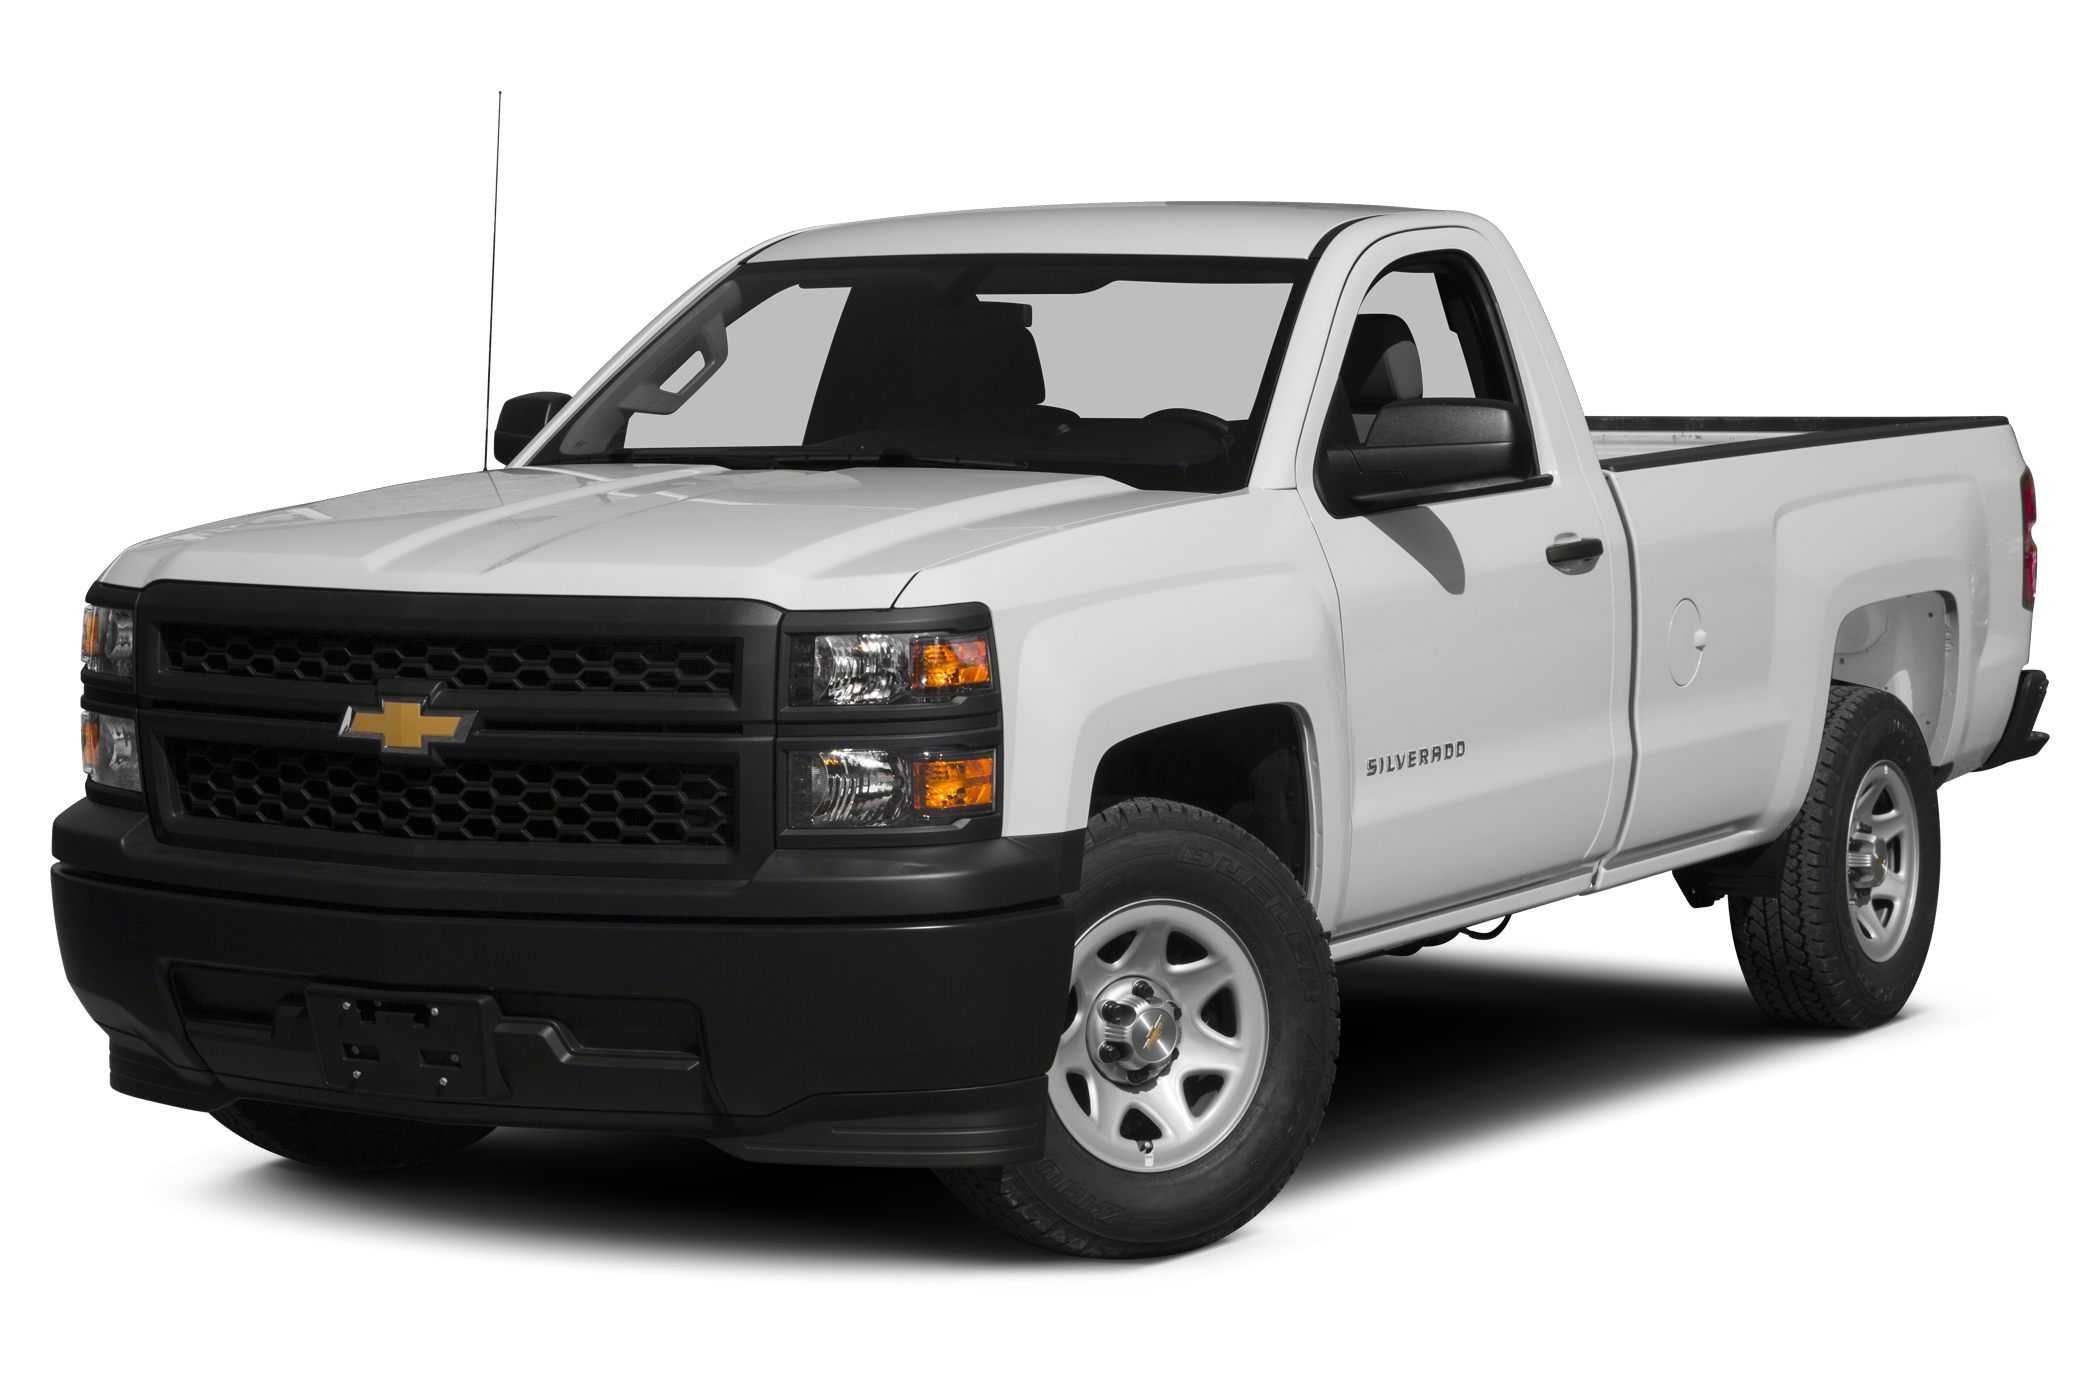 2015 Chevrolet Silverado 1500 1LT Crew Cab Pickup for sale in Gadsden for $43,290 with 14 miles